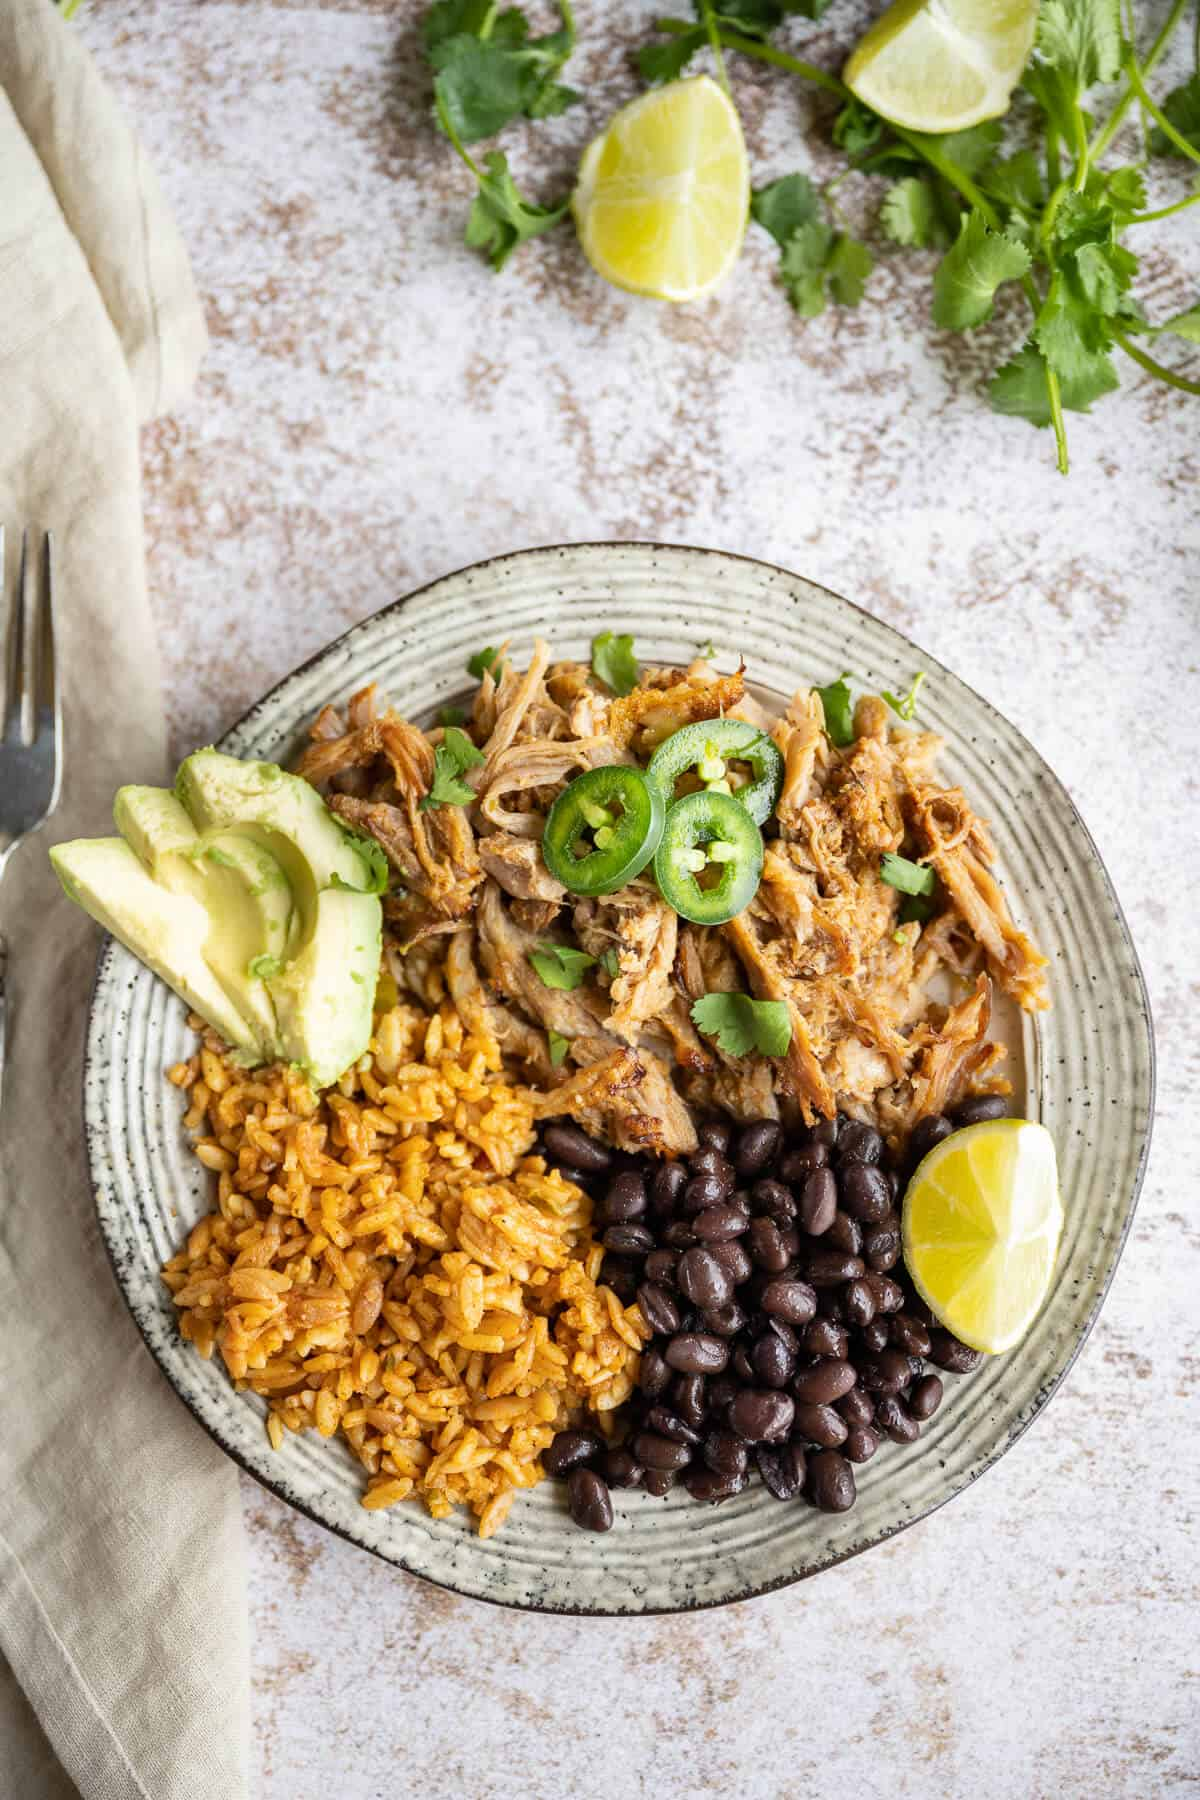 plate of carnitas with rice, beans, avocado and jalapeno